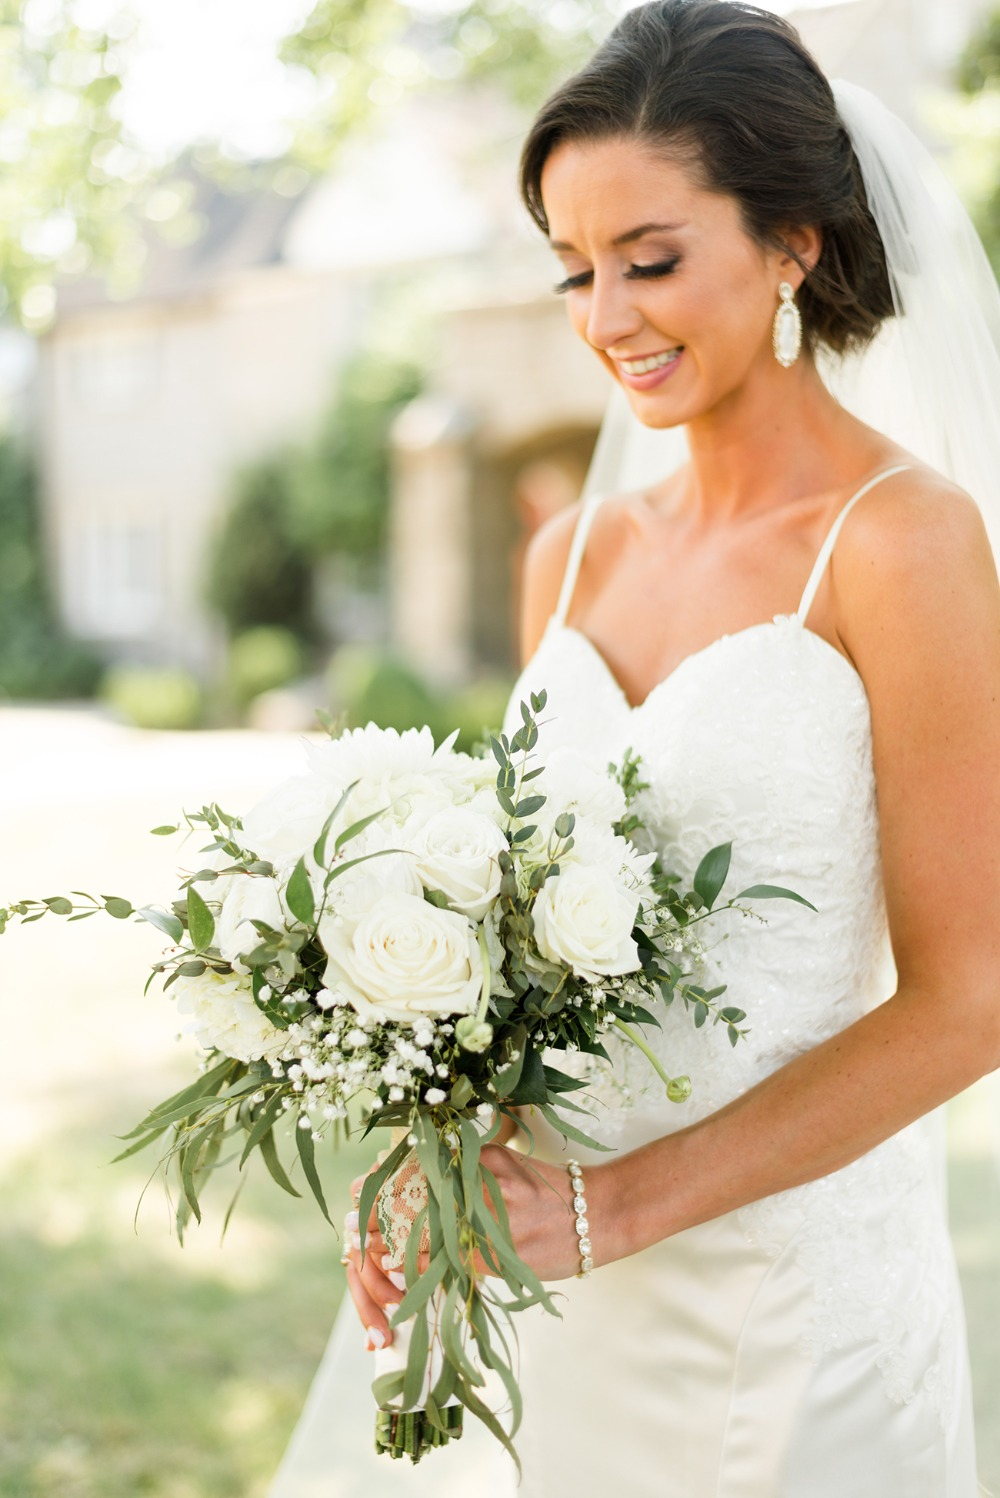 Gallery The Perfect Gold And White Hometown Wedding For 35k